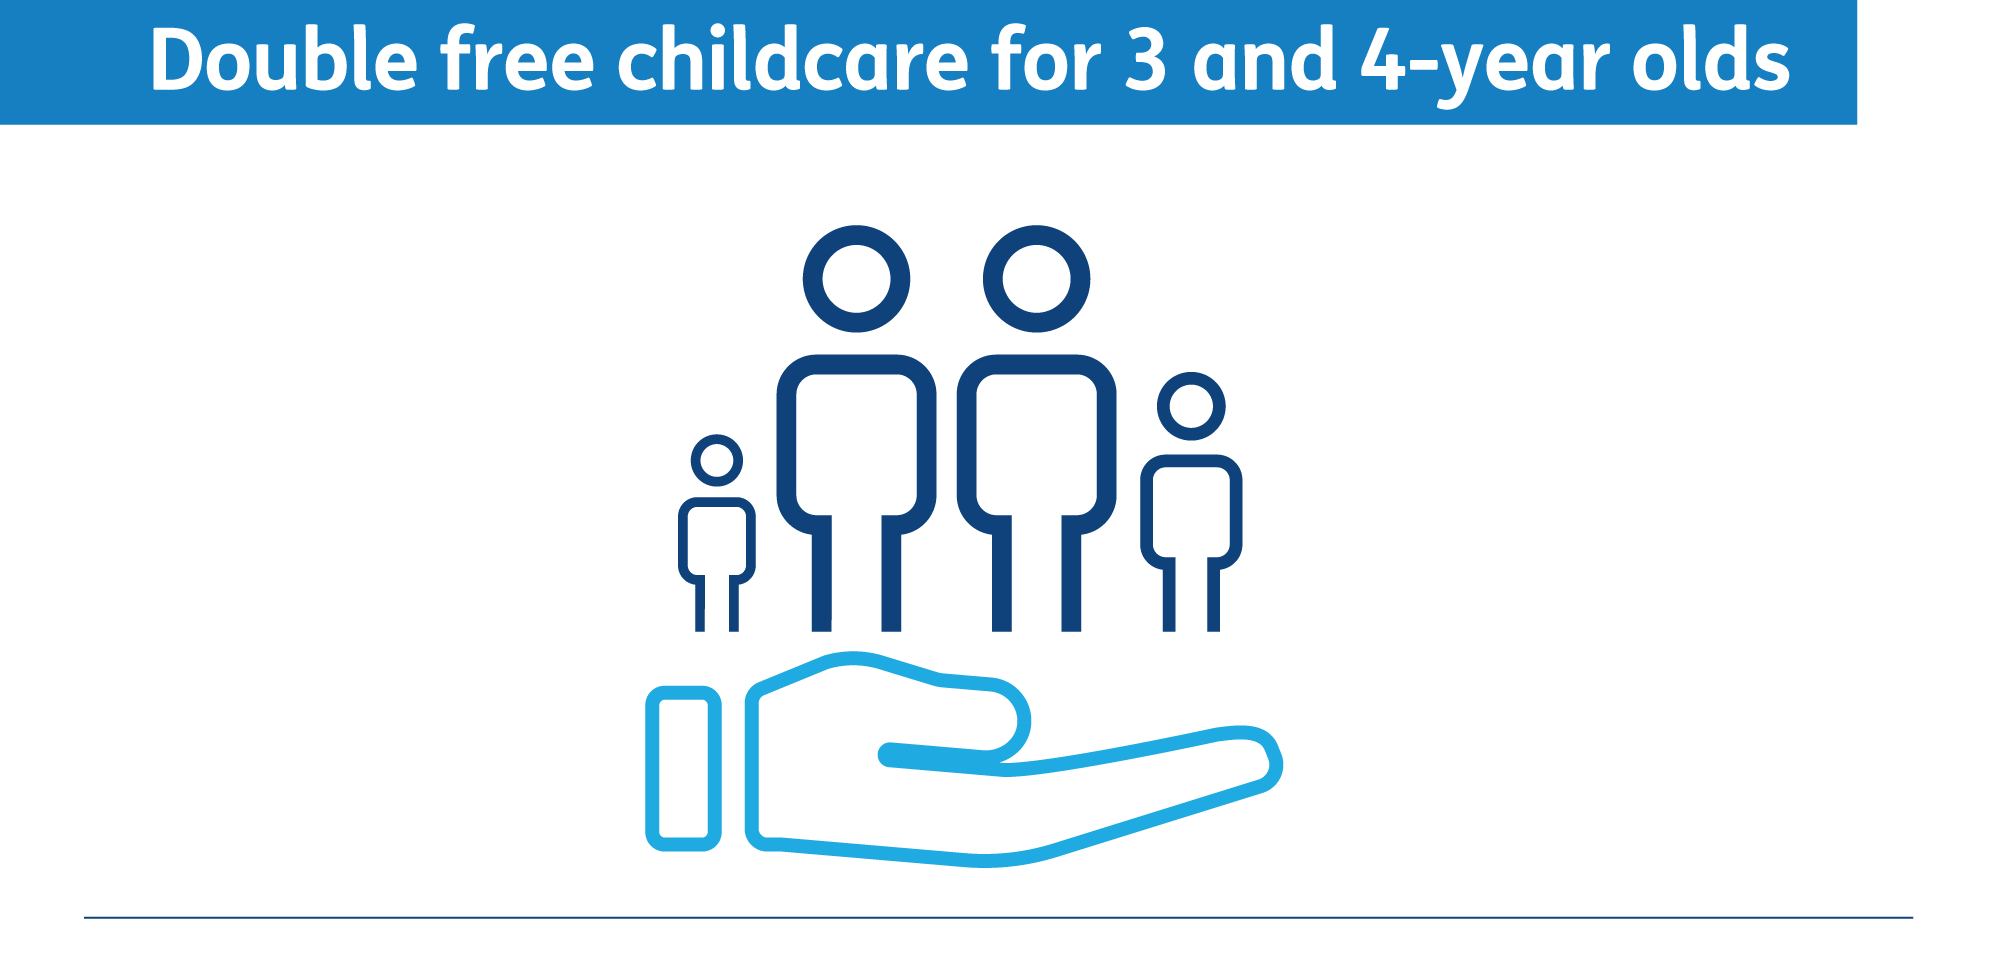 Double free childcare for 3 and 4 year olds